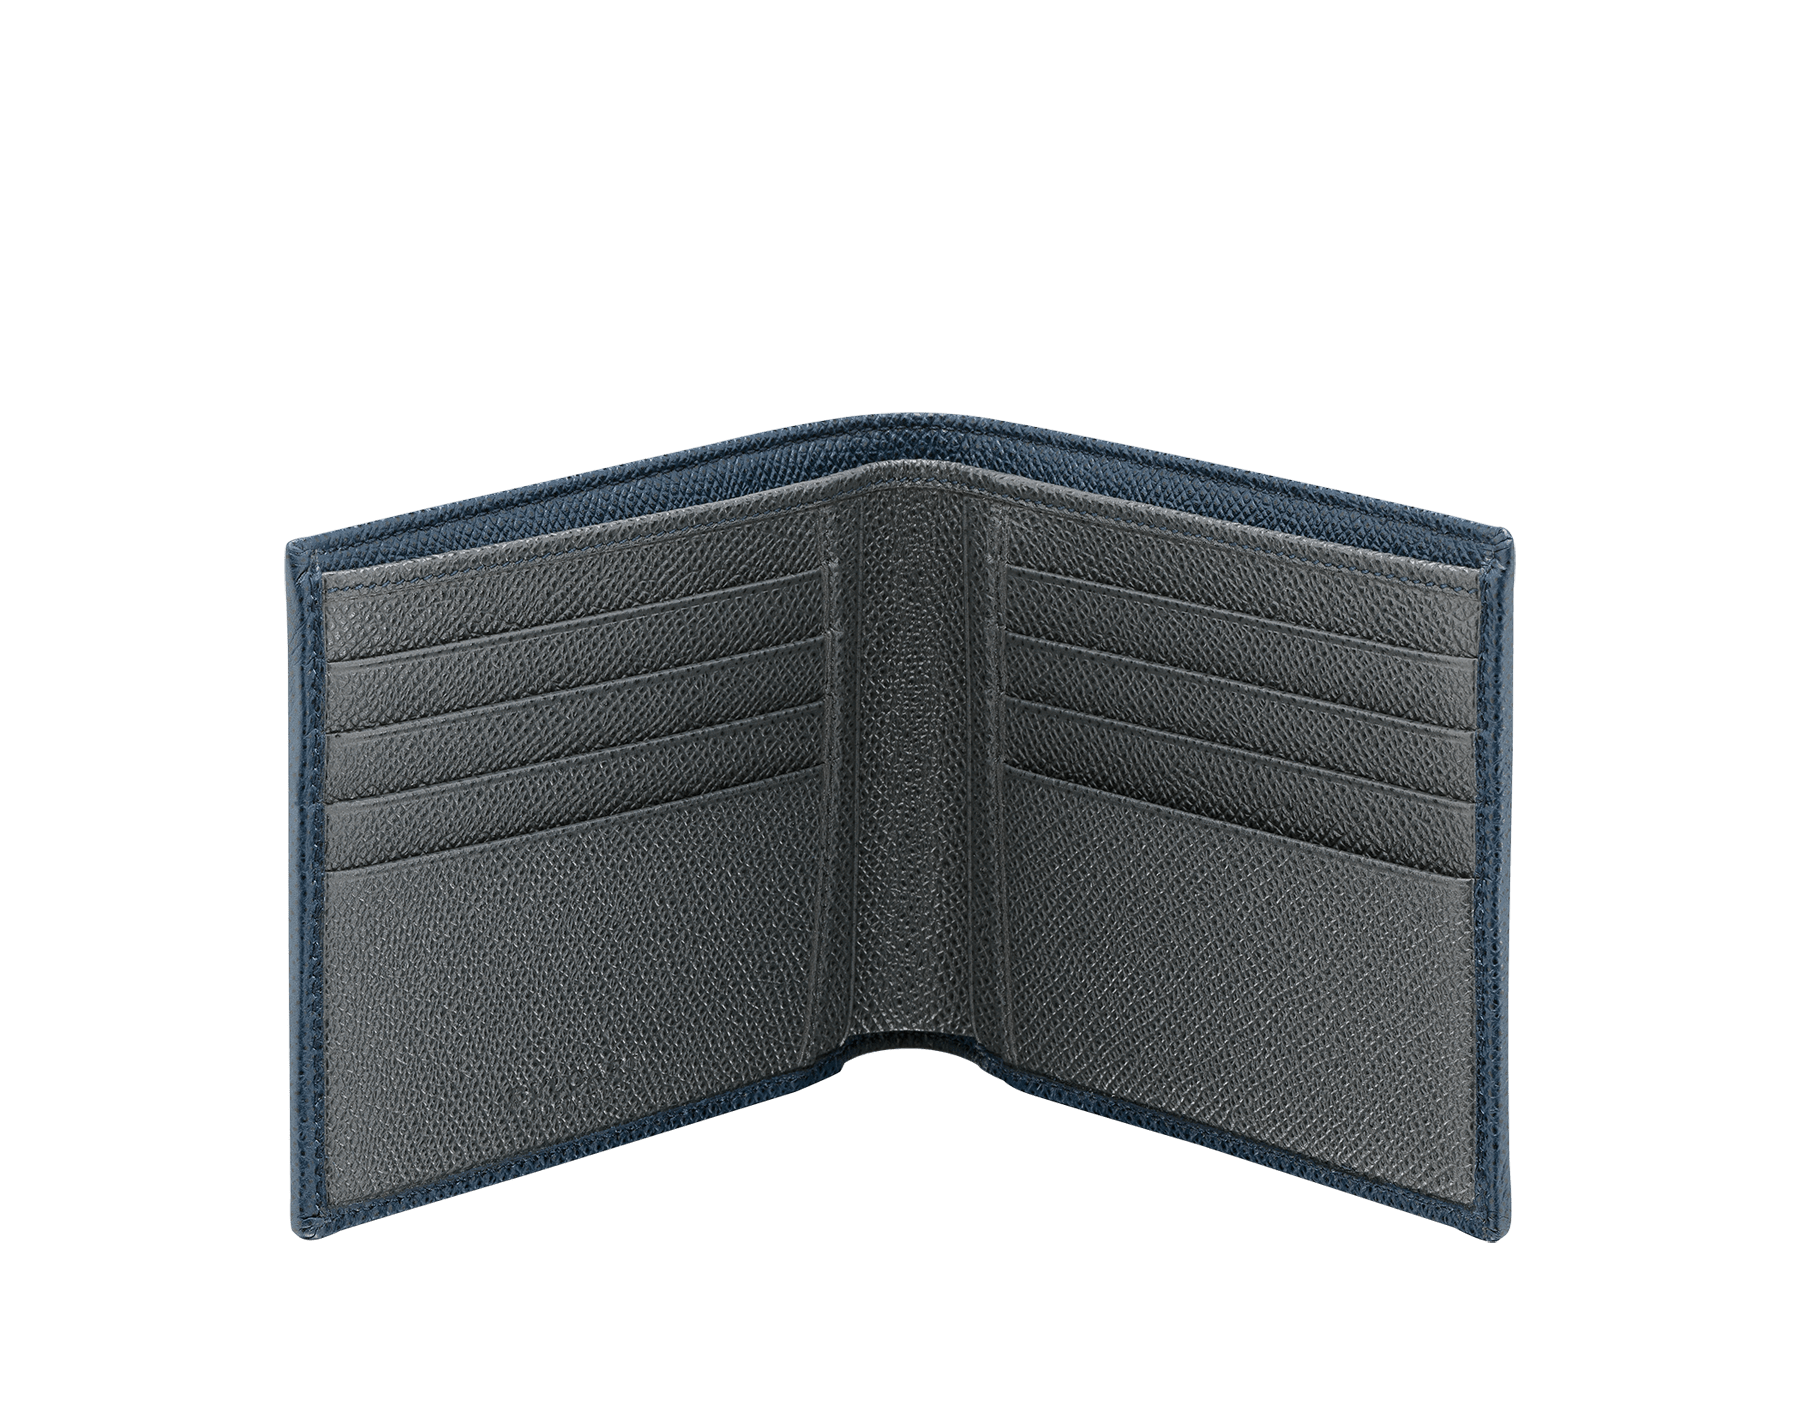 BVLGARI BVLGARI men's hipster wallet in denim sapphire and charcoal diamond grain calf leather. Iconic logo décor in palladium plated brass. 289109 image 2